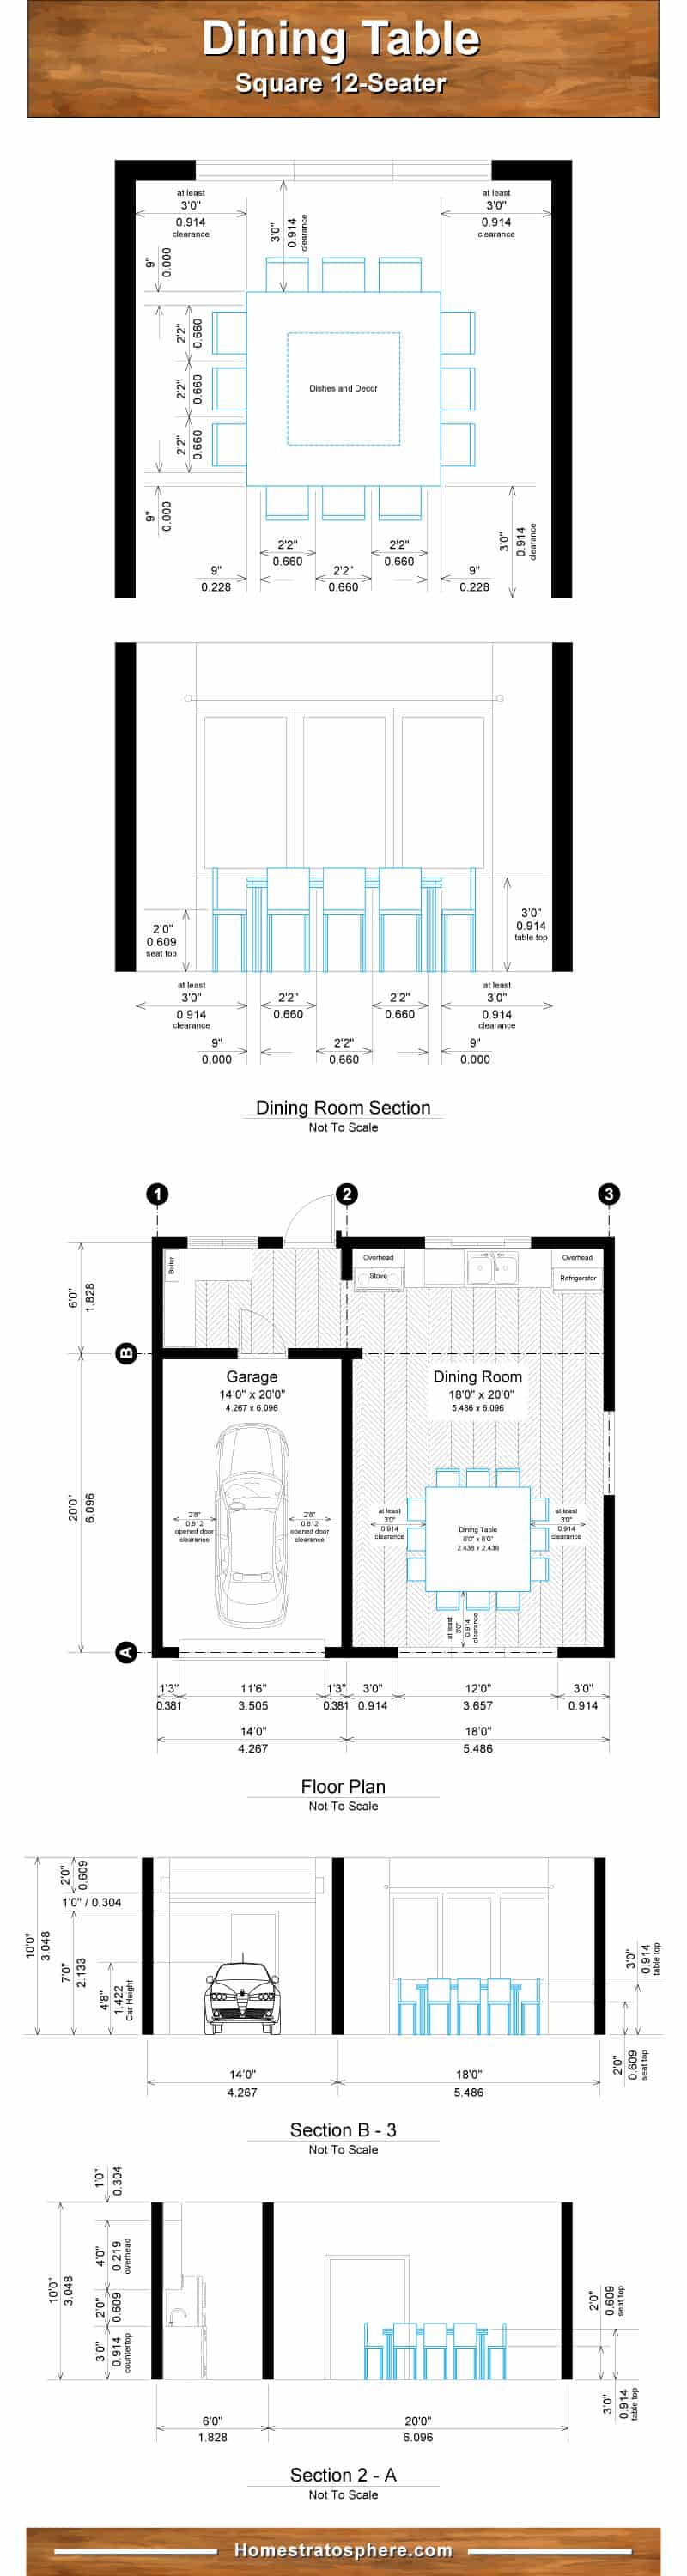 Square dining table dimensions chart for 12 people